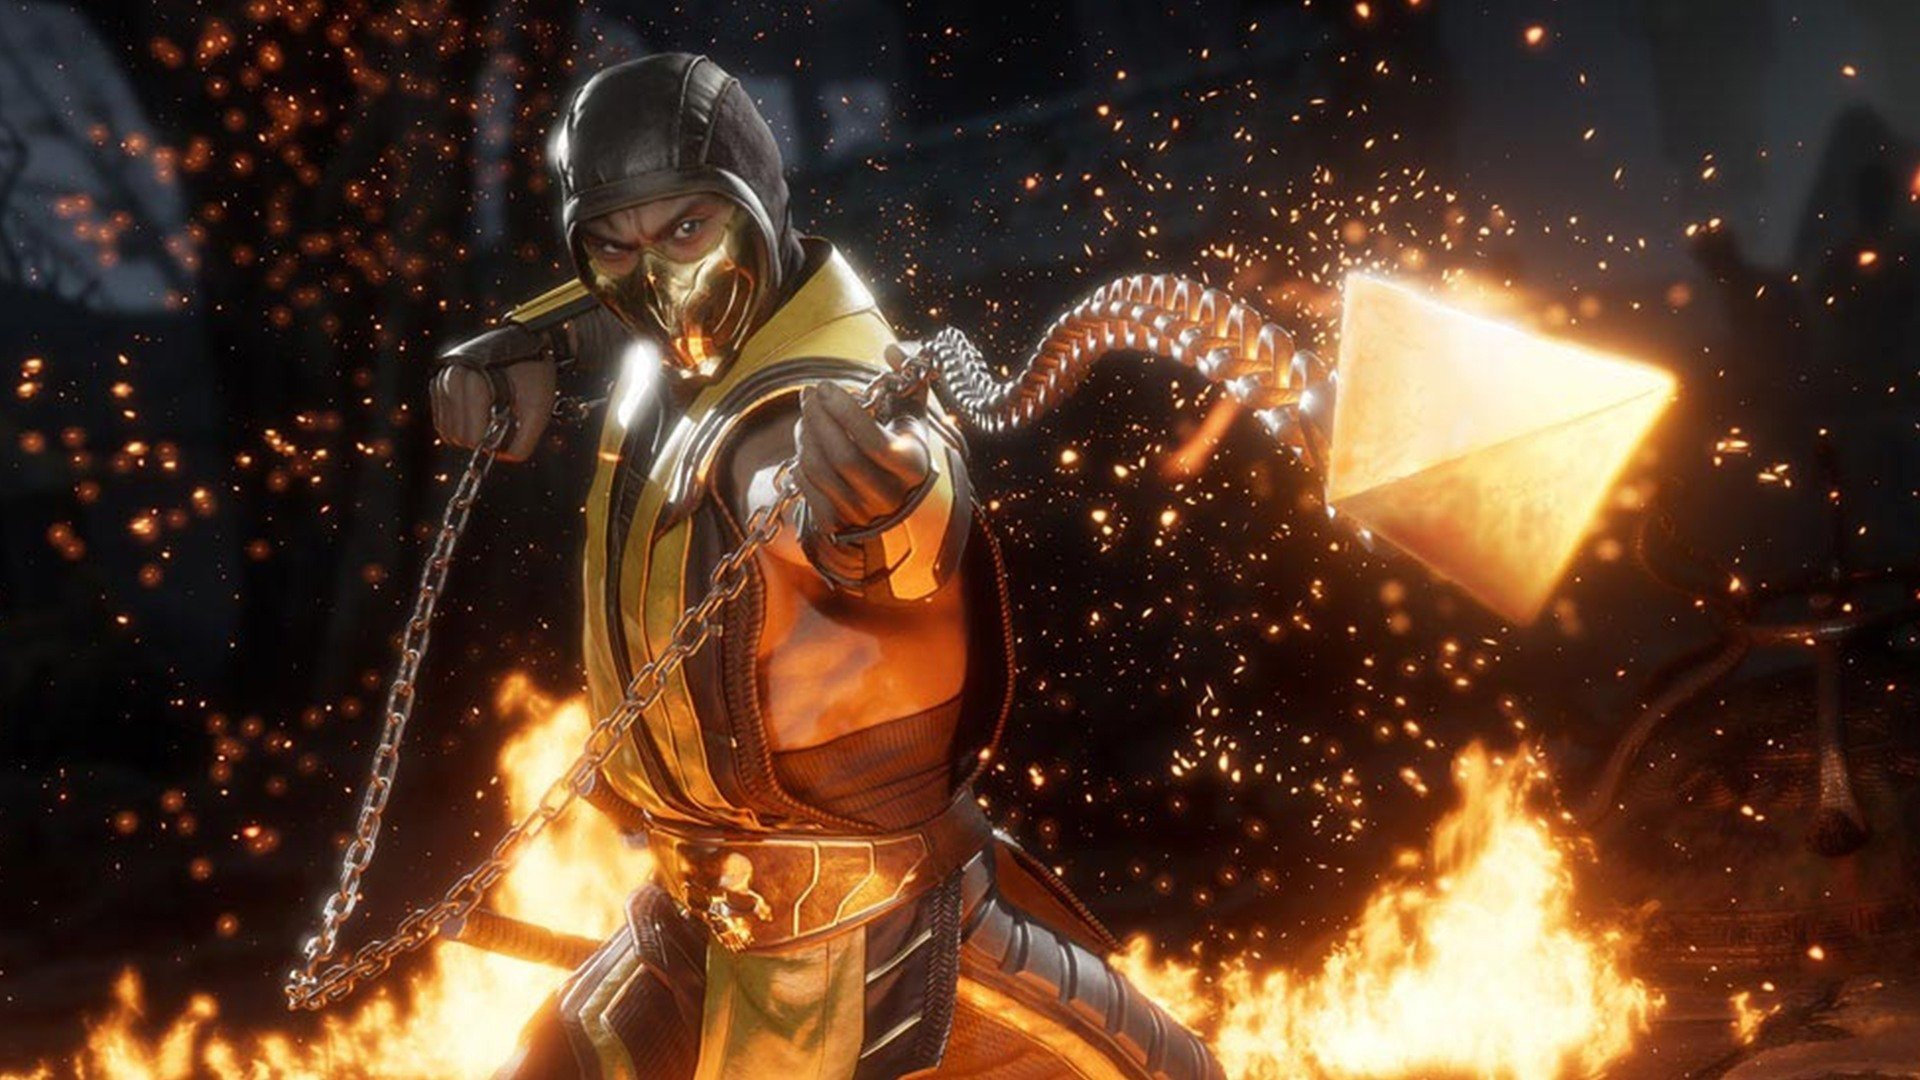 Mortal Kombat 11 PS4 Beta Announced, Access Locked to Pre-Orders